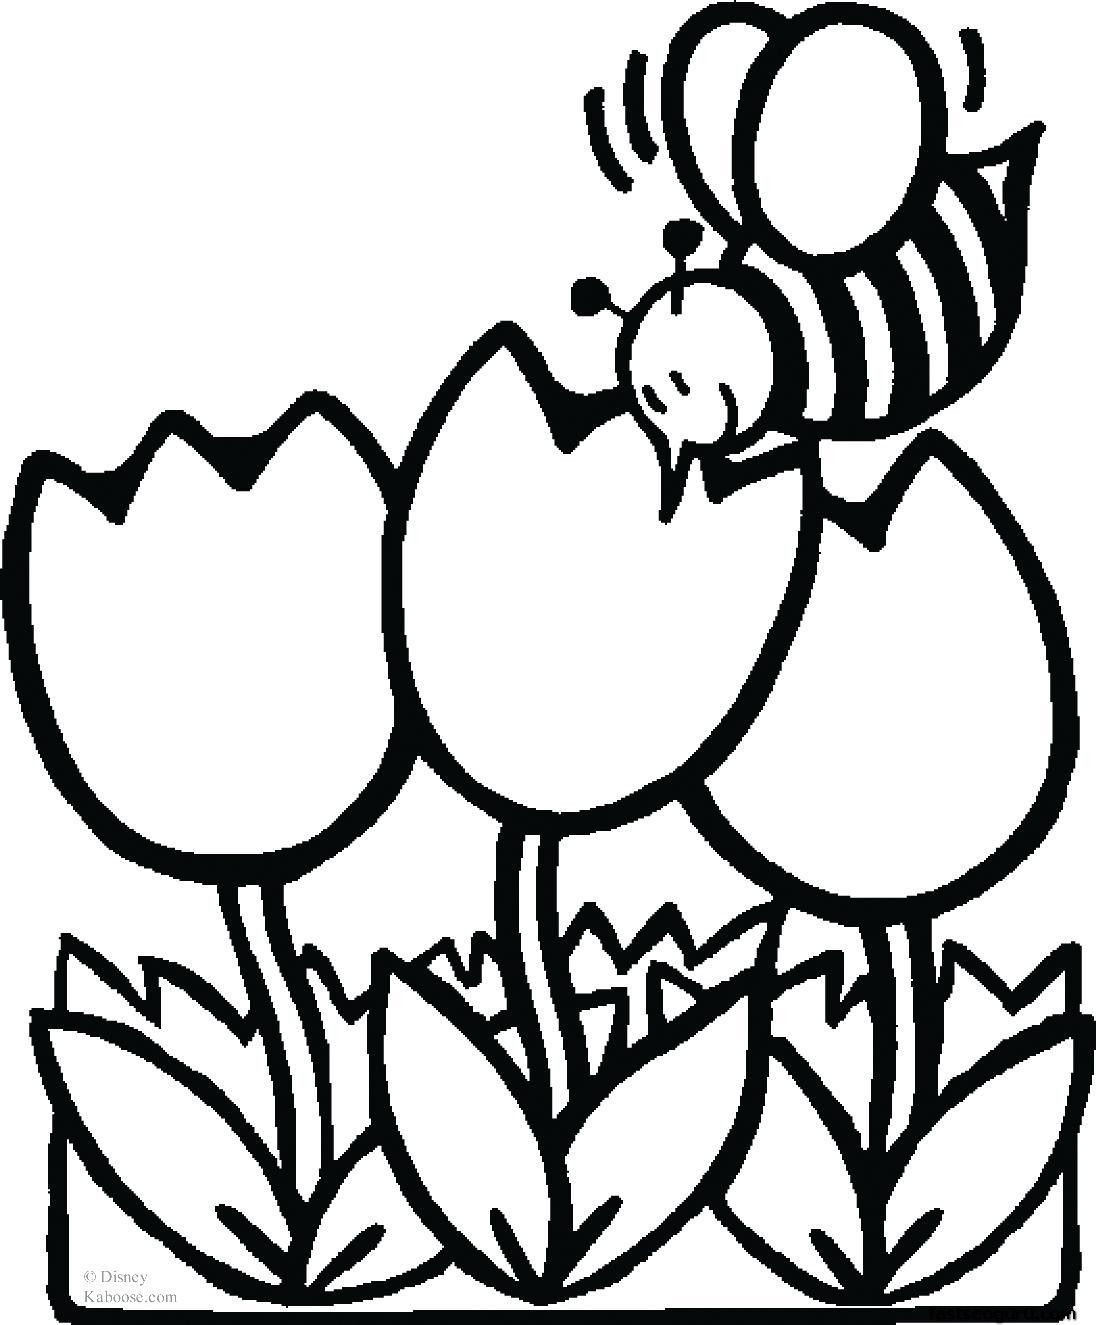 1096x1325 Flower Coloring Pages Animal Print Out Pictures Incredible Bee